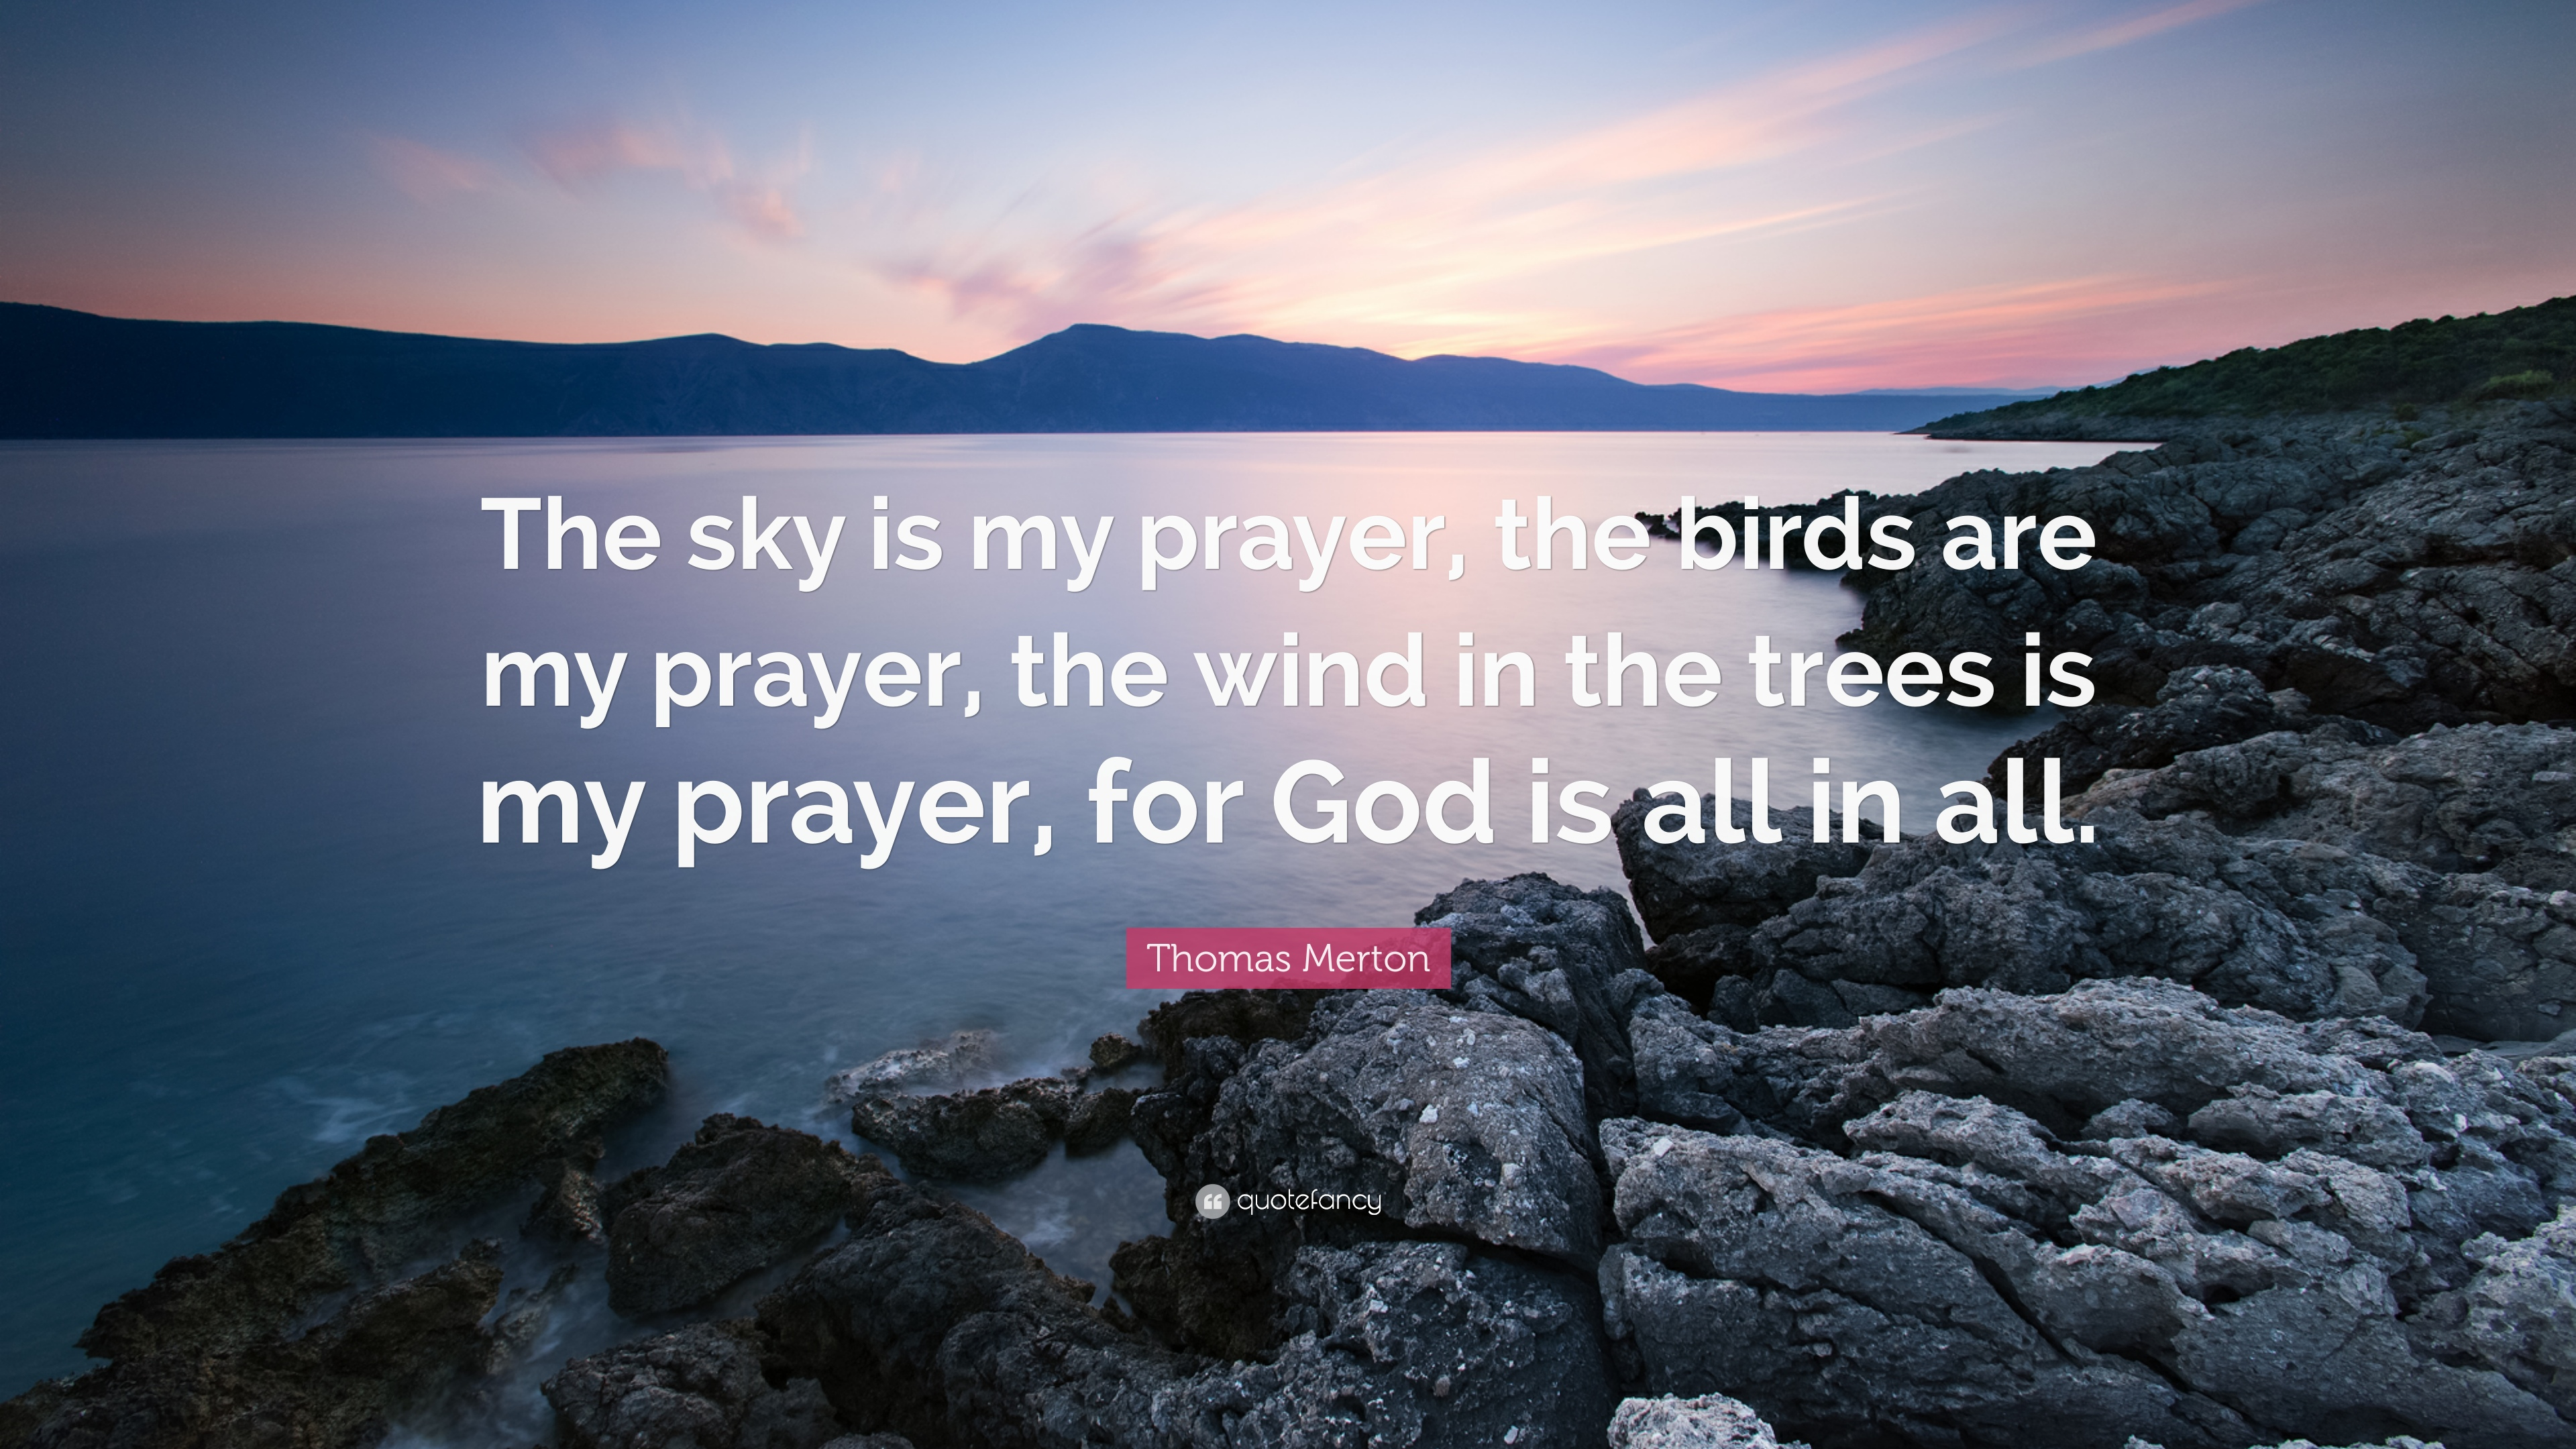 Thomas Merton Quote The Sky Is My Prayer The Birds Are My Prayer The Wind In The Trees Is My Prayer For God Is All In All 12 Wallpapers Quotefancy